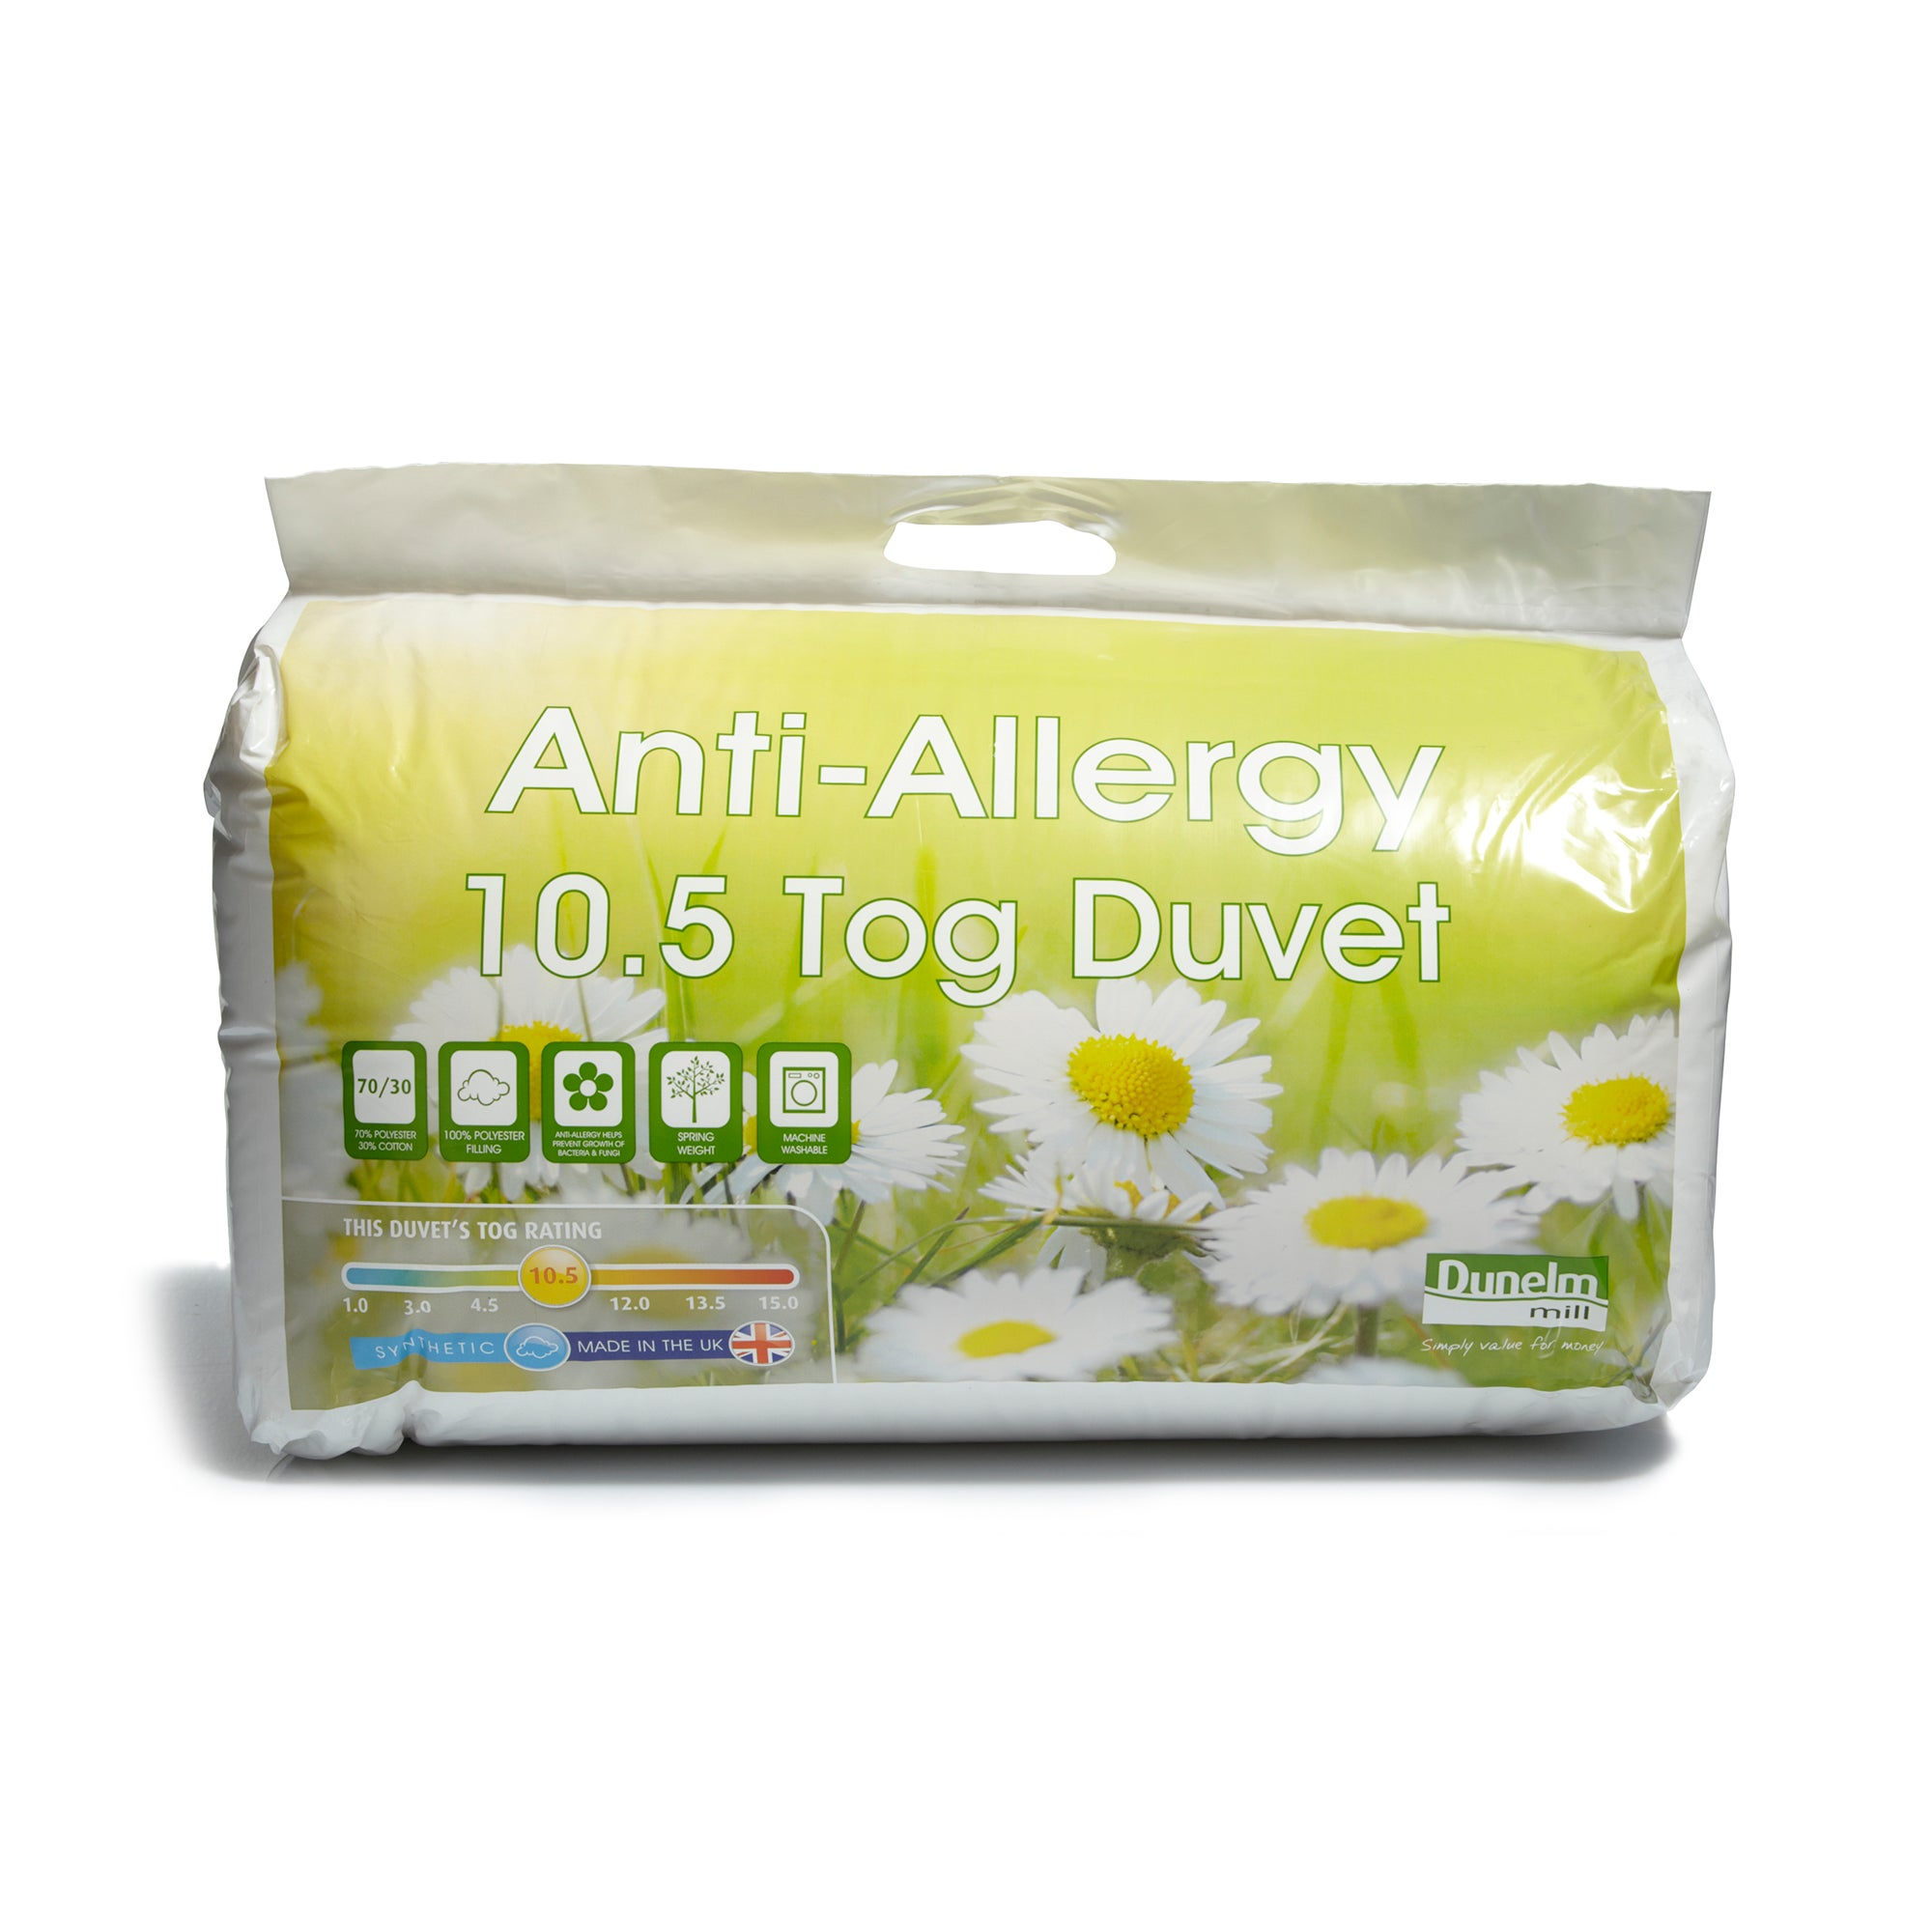 Anti Allergy 10.5 Tog Duvet